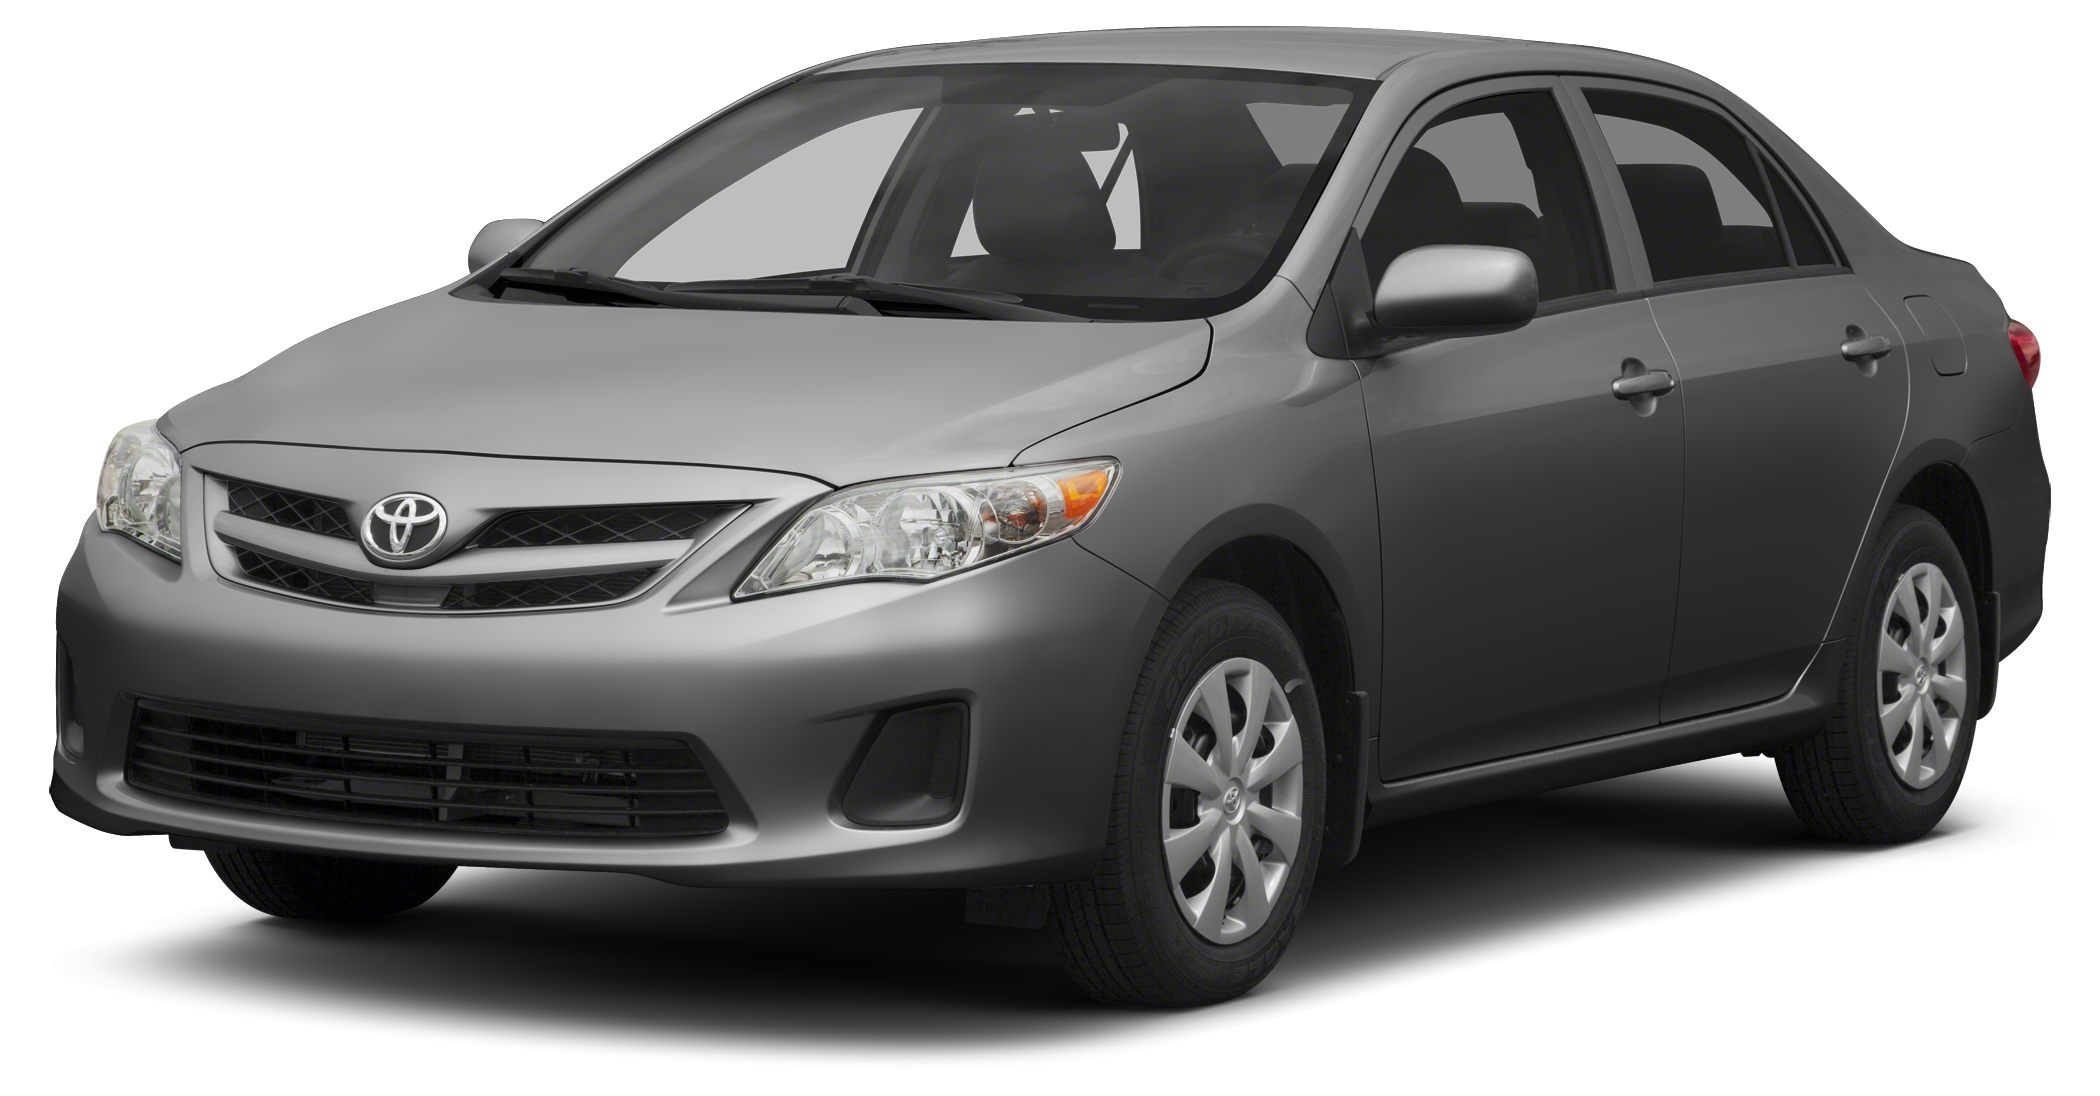 2013 Toyota Corolla LE LE trim MAGNETIC GRAY METALLIC exterior and ASH interior FUEL EFFICIENT 3